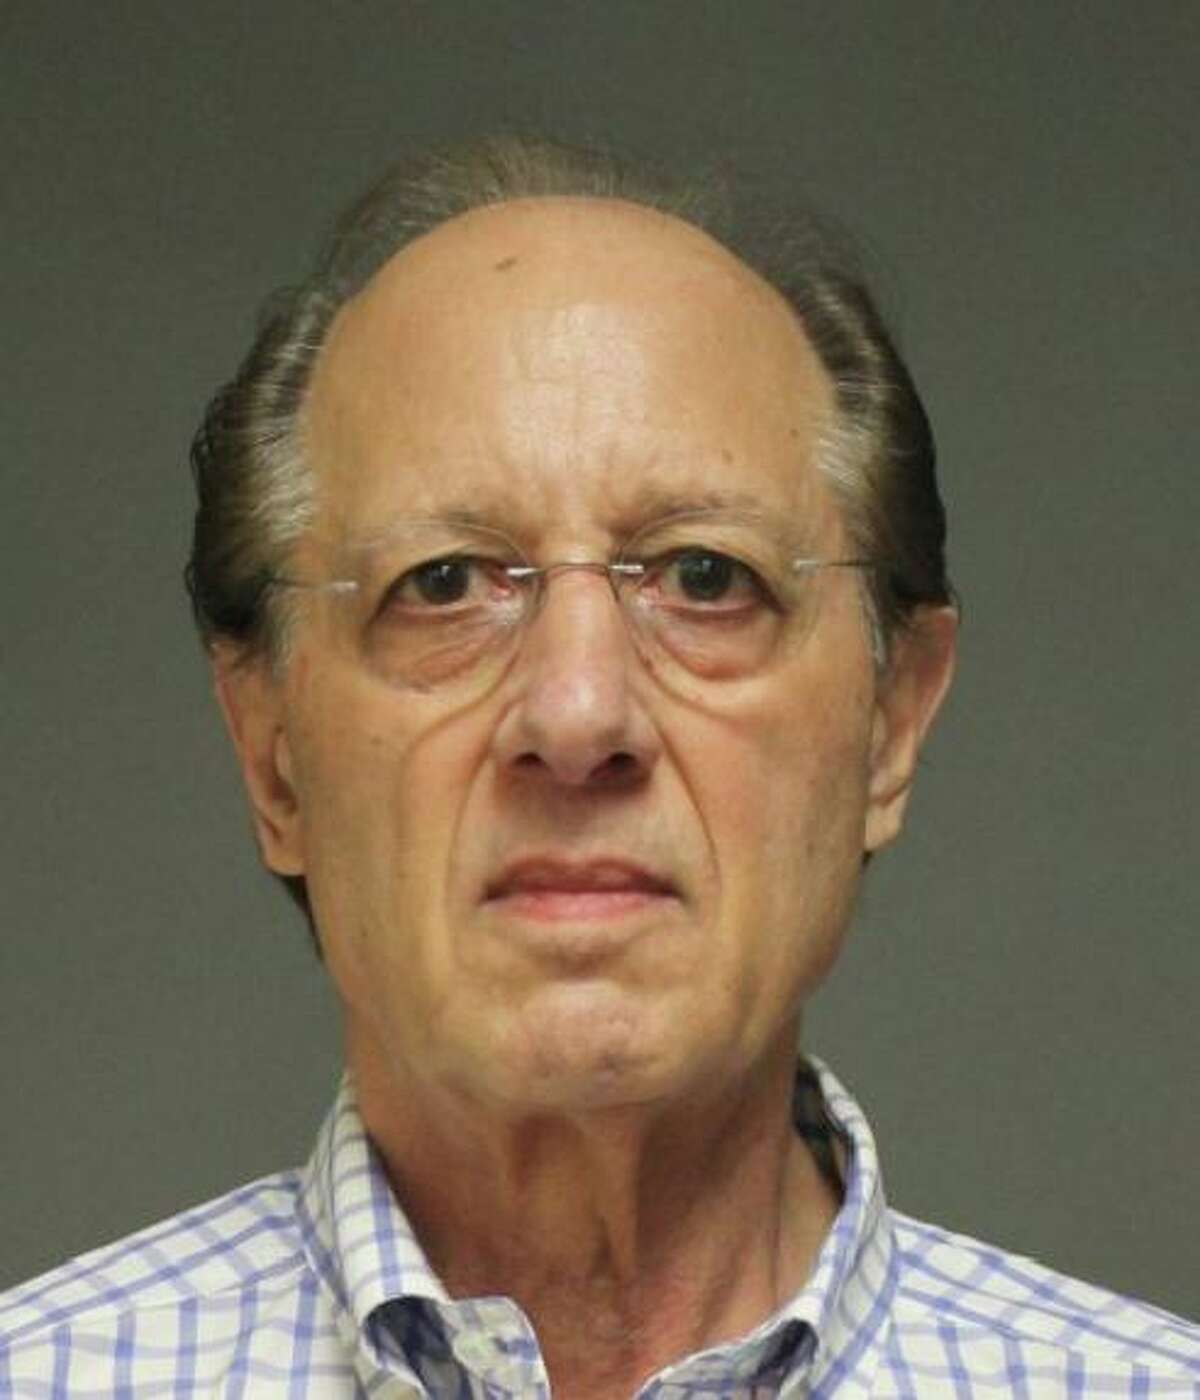 Former Fairfield Chief Fiscal Officer Robert Mayer was charged with third-degree burglary, third-degree larceny and tampering with evidence.